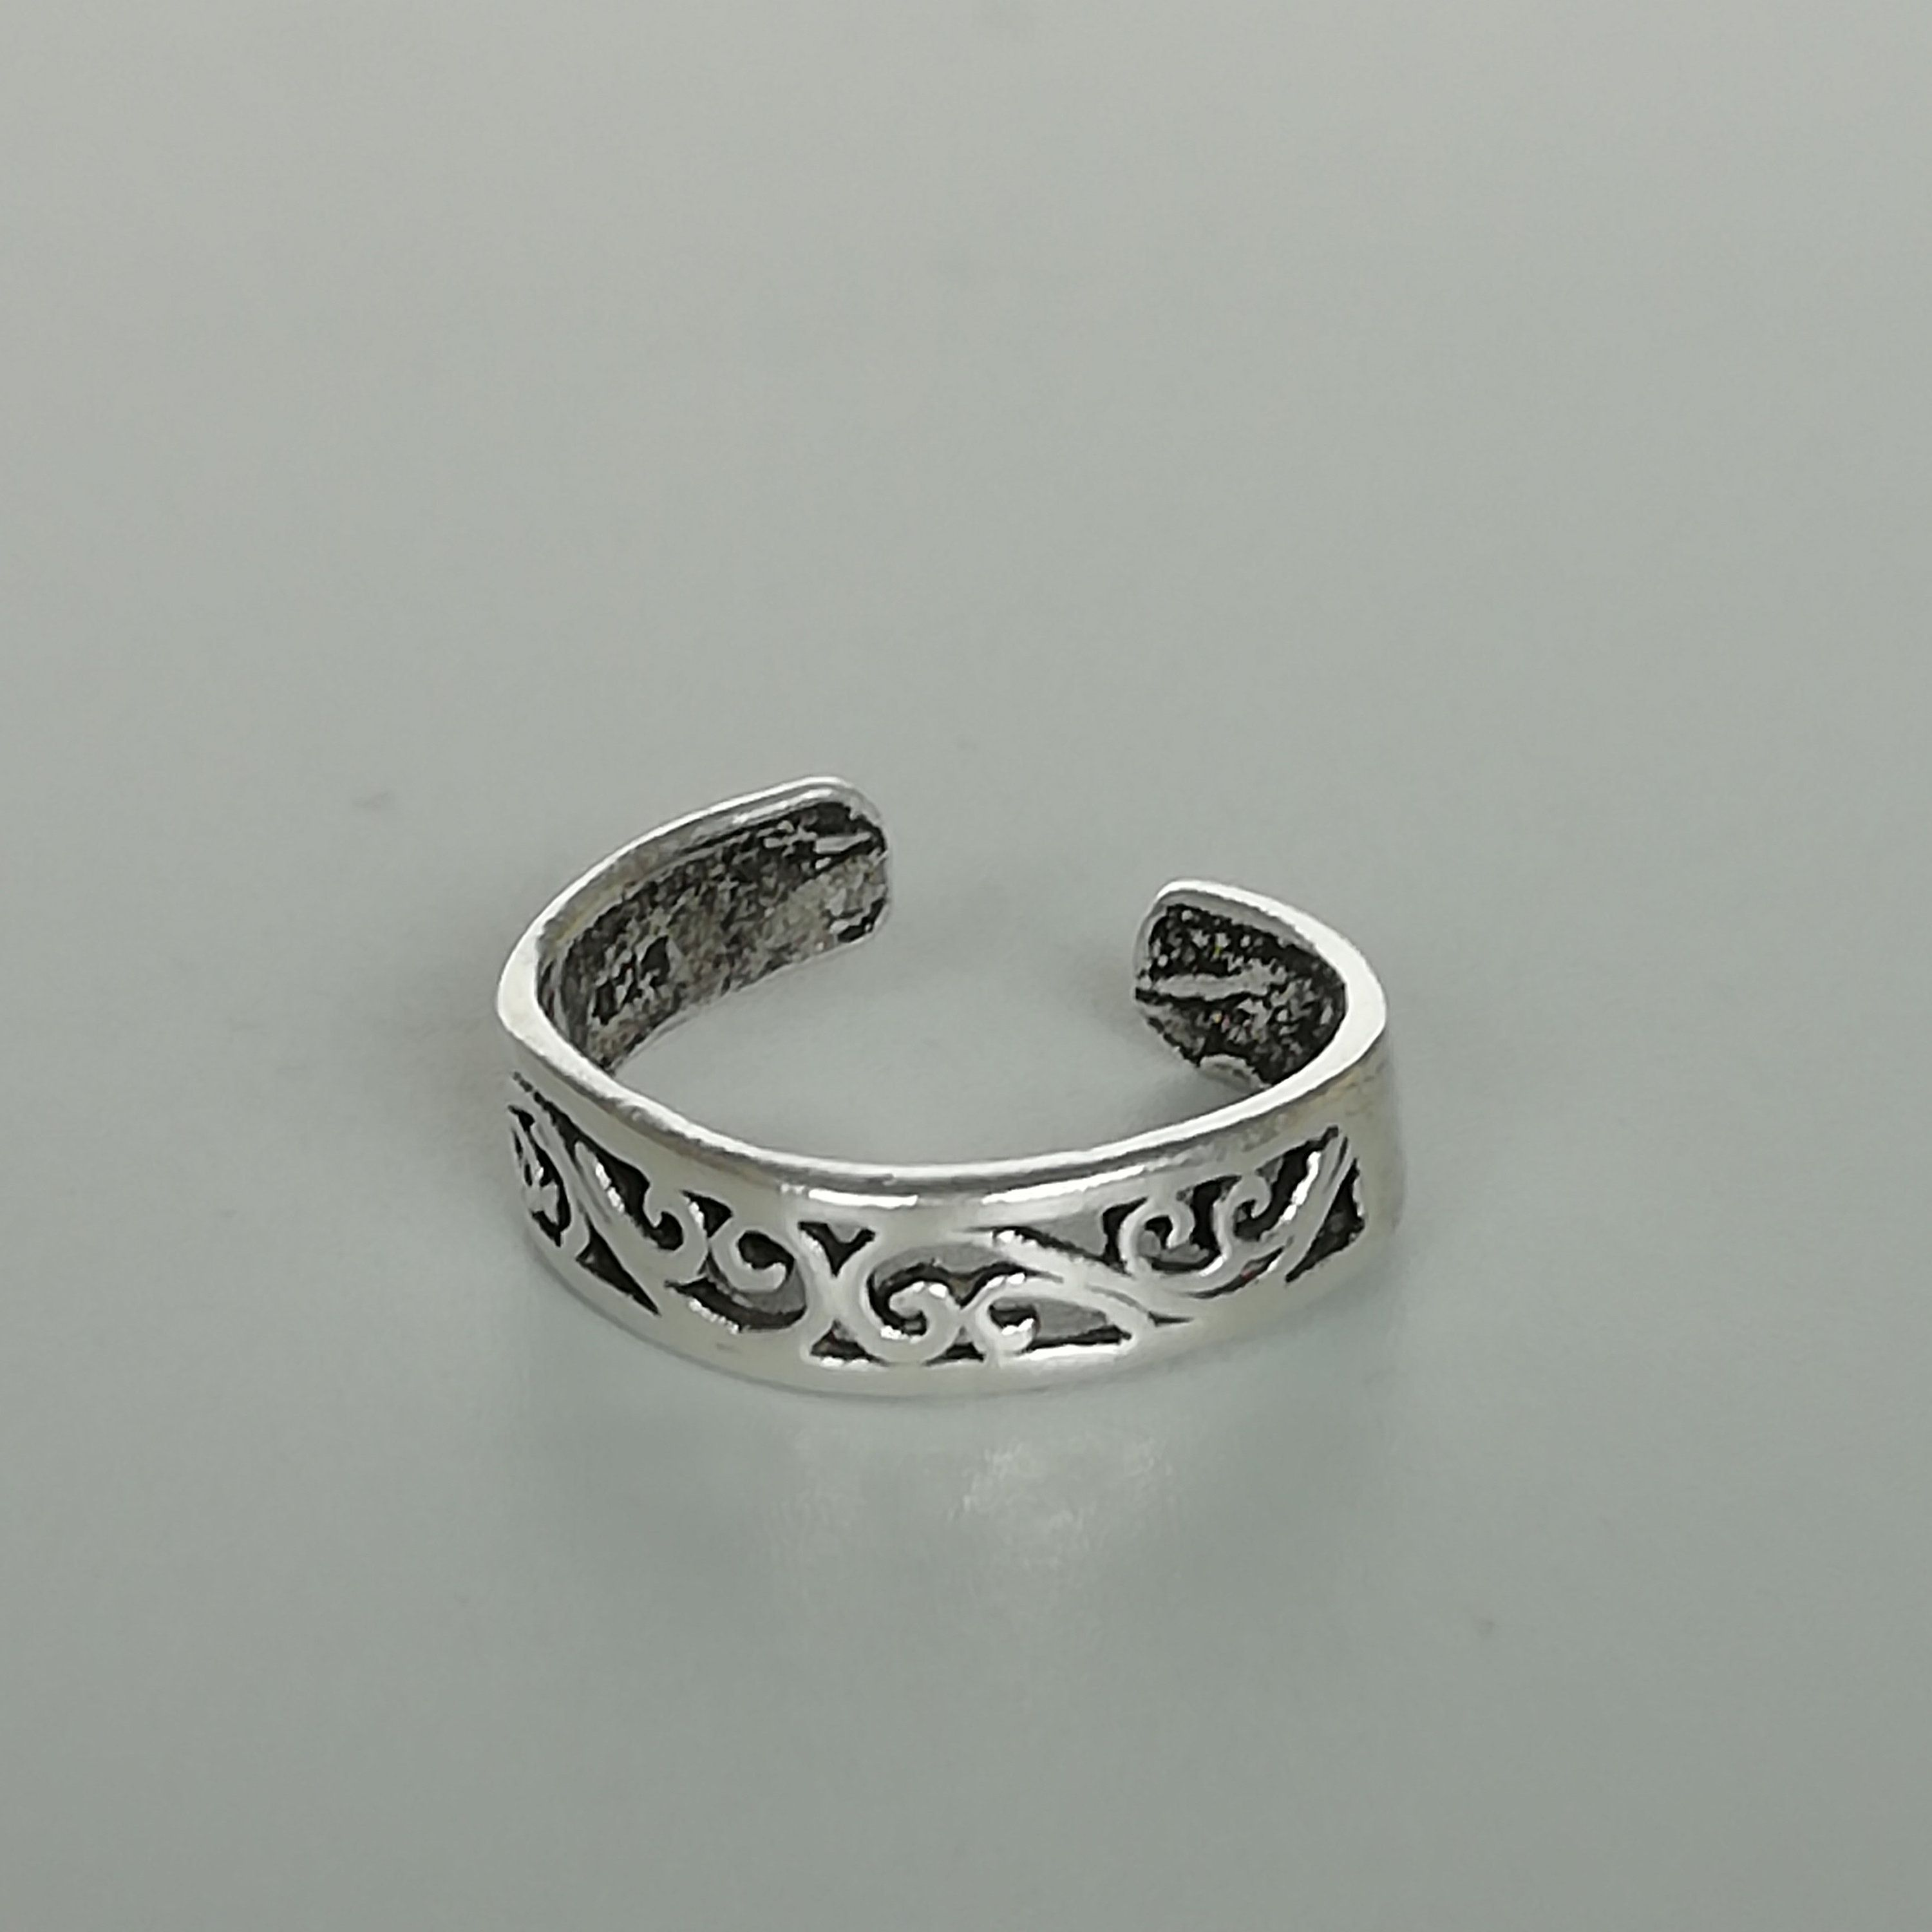 Twisted silver toe ring Toe band TCC Sterling silver toe band Minimalist toe ring Bohemian jewelry Body jewelry